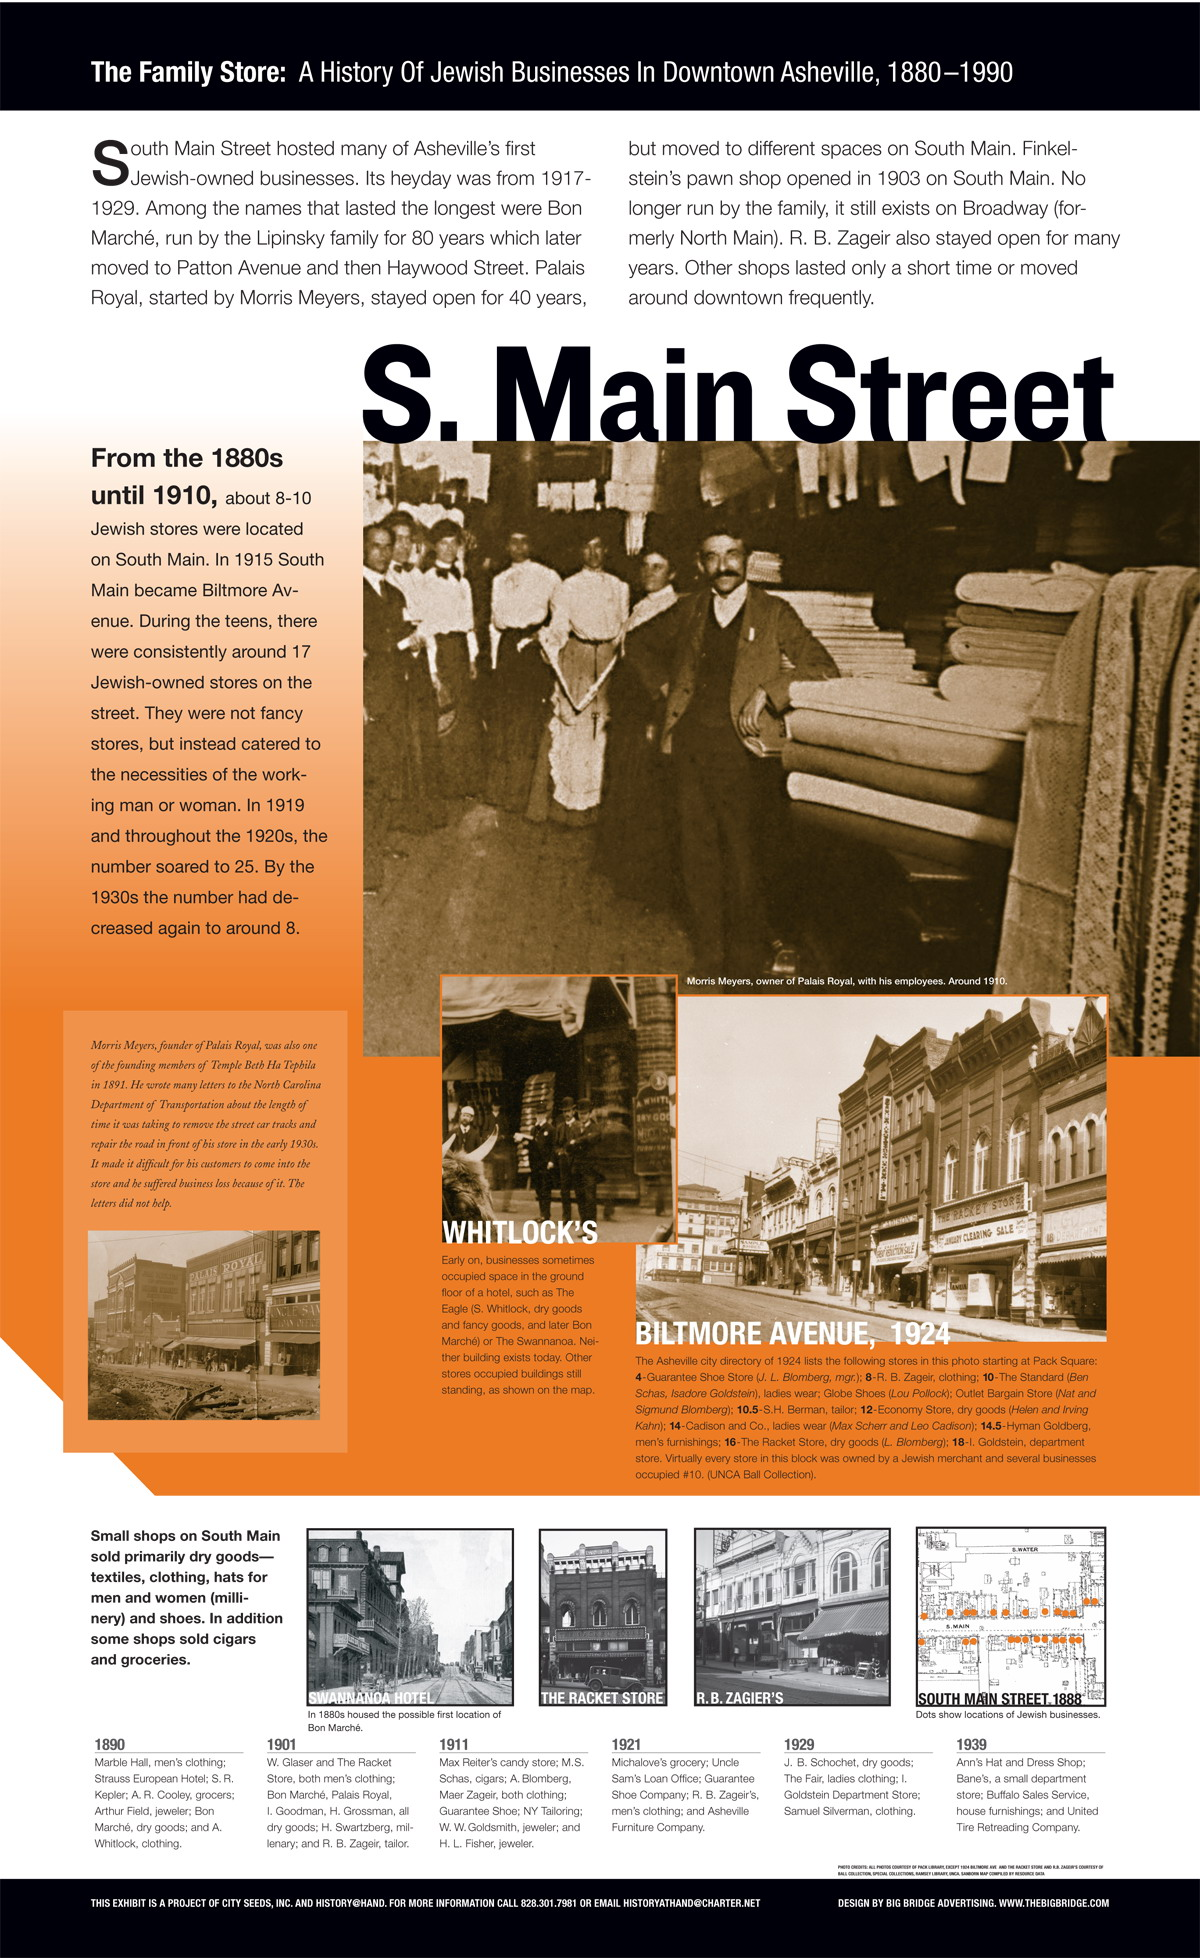 South Main Street Panel from Exhibit